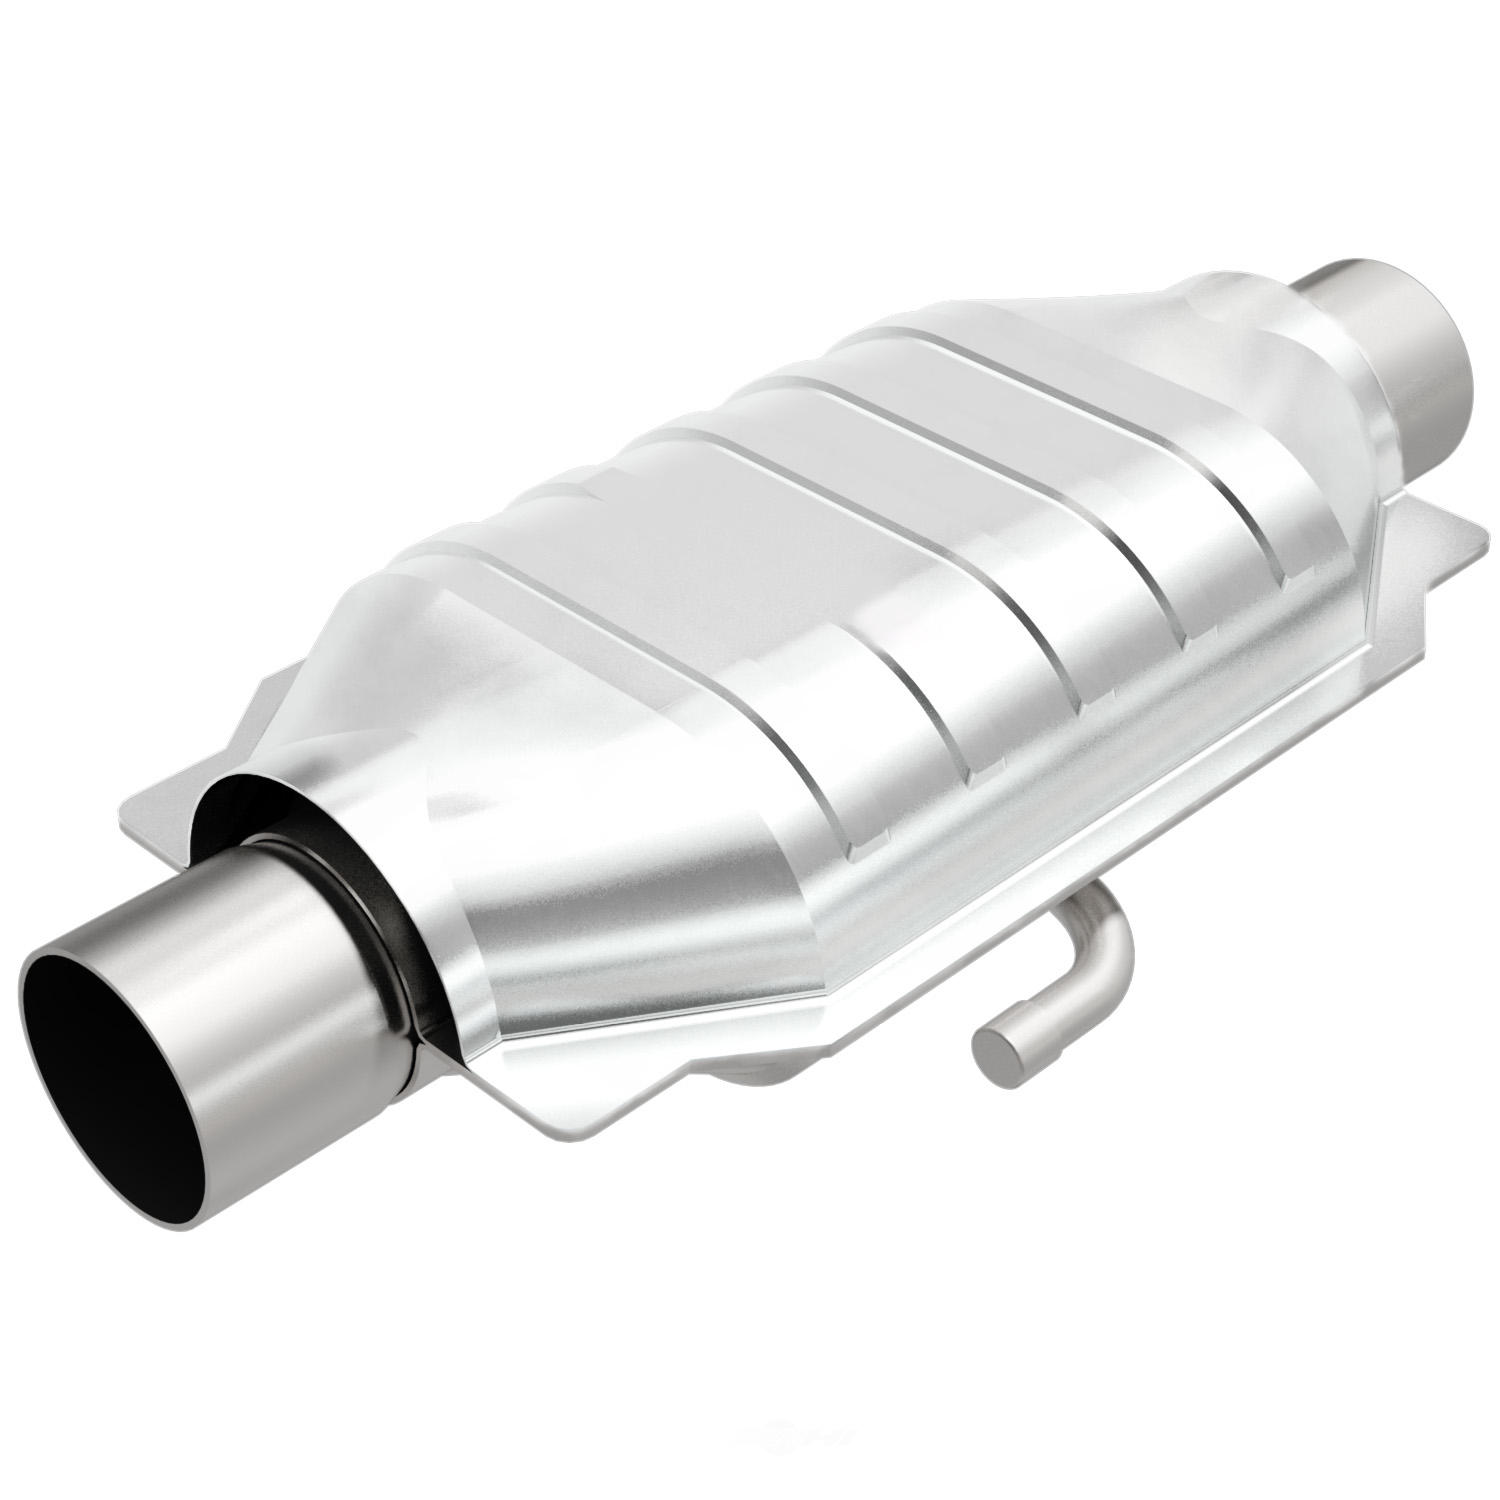 MAGNAFLOW CARB COMPLIANT CONVERTER - 2in. Universal California Pre-OBDII Catalytic Converter - MFC 332014